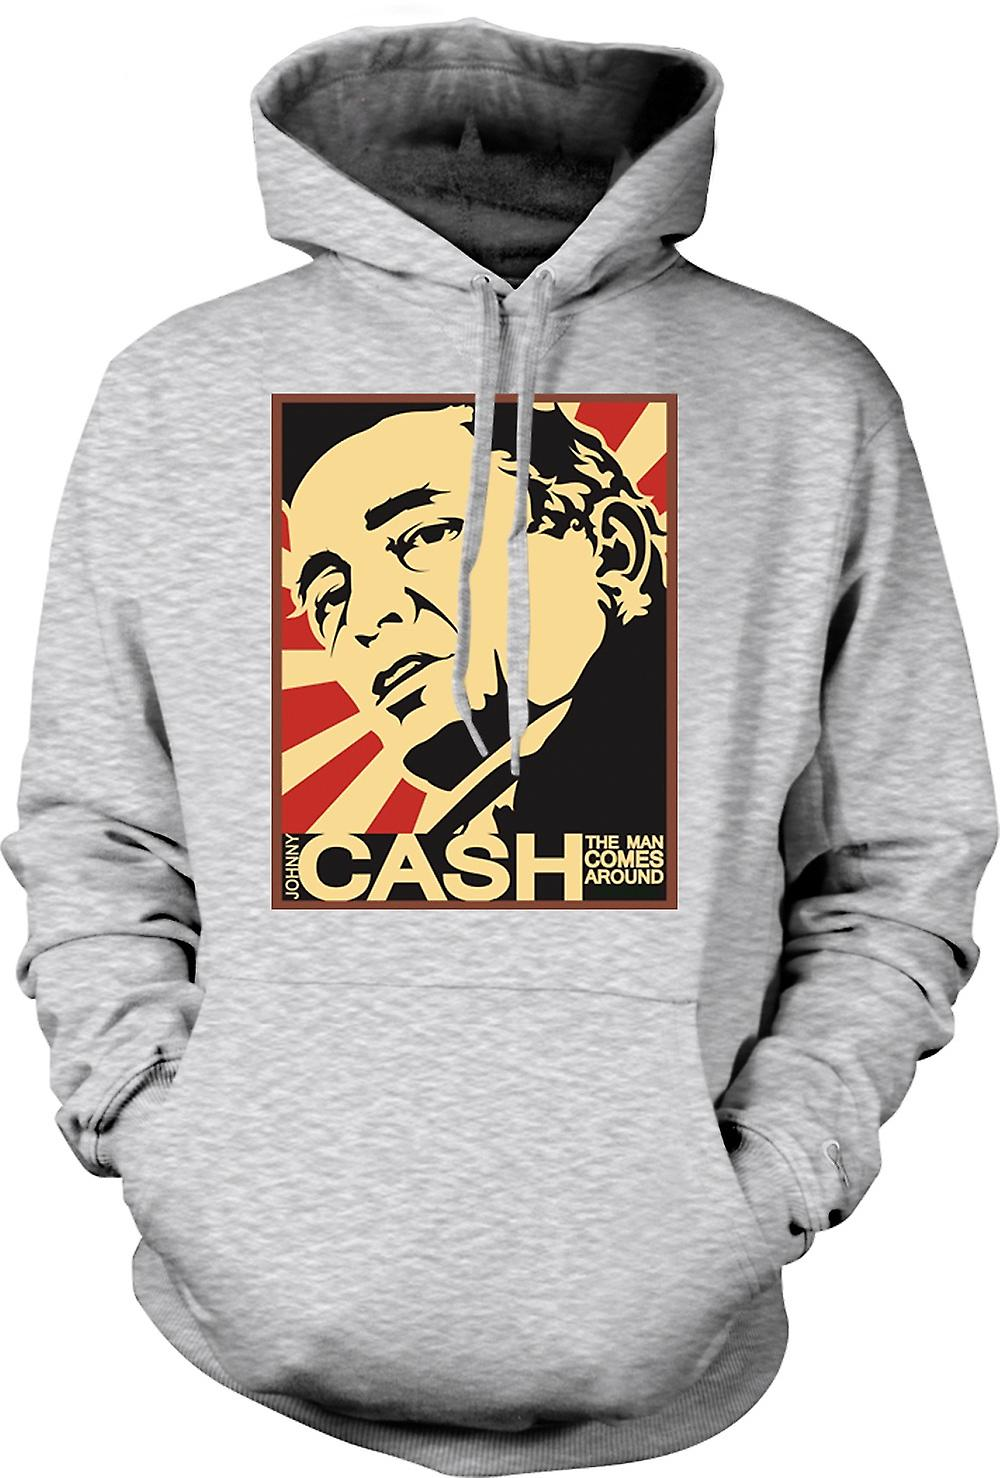 Mens Hoodie - Johnny Cash - Man Comes Around